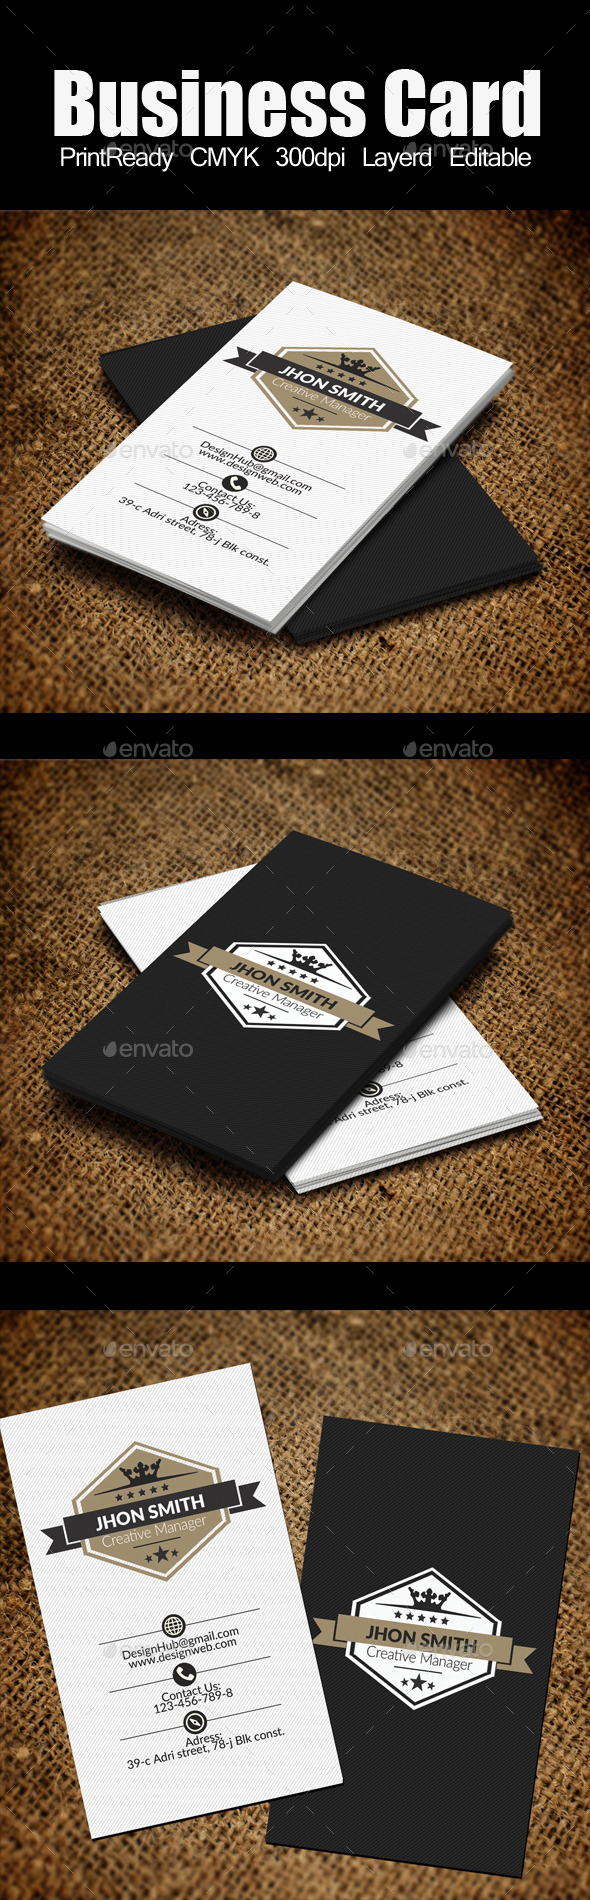 vertical Retro Vintage Business Card Template by